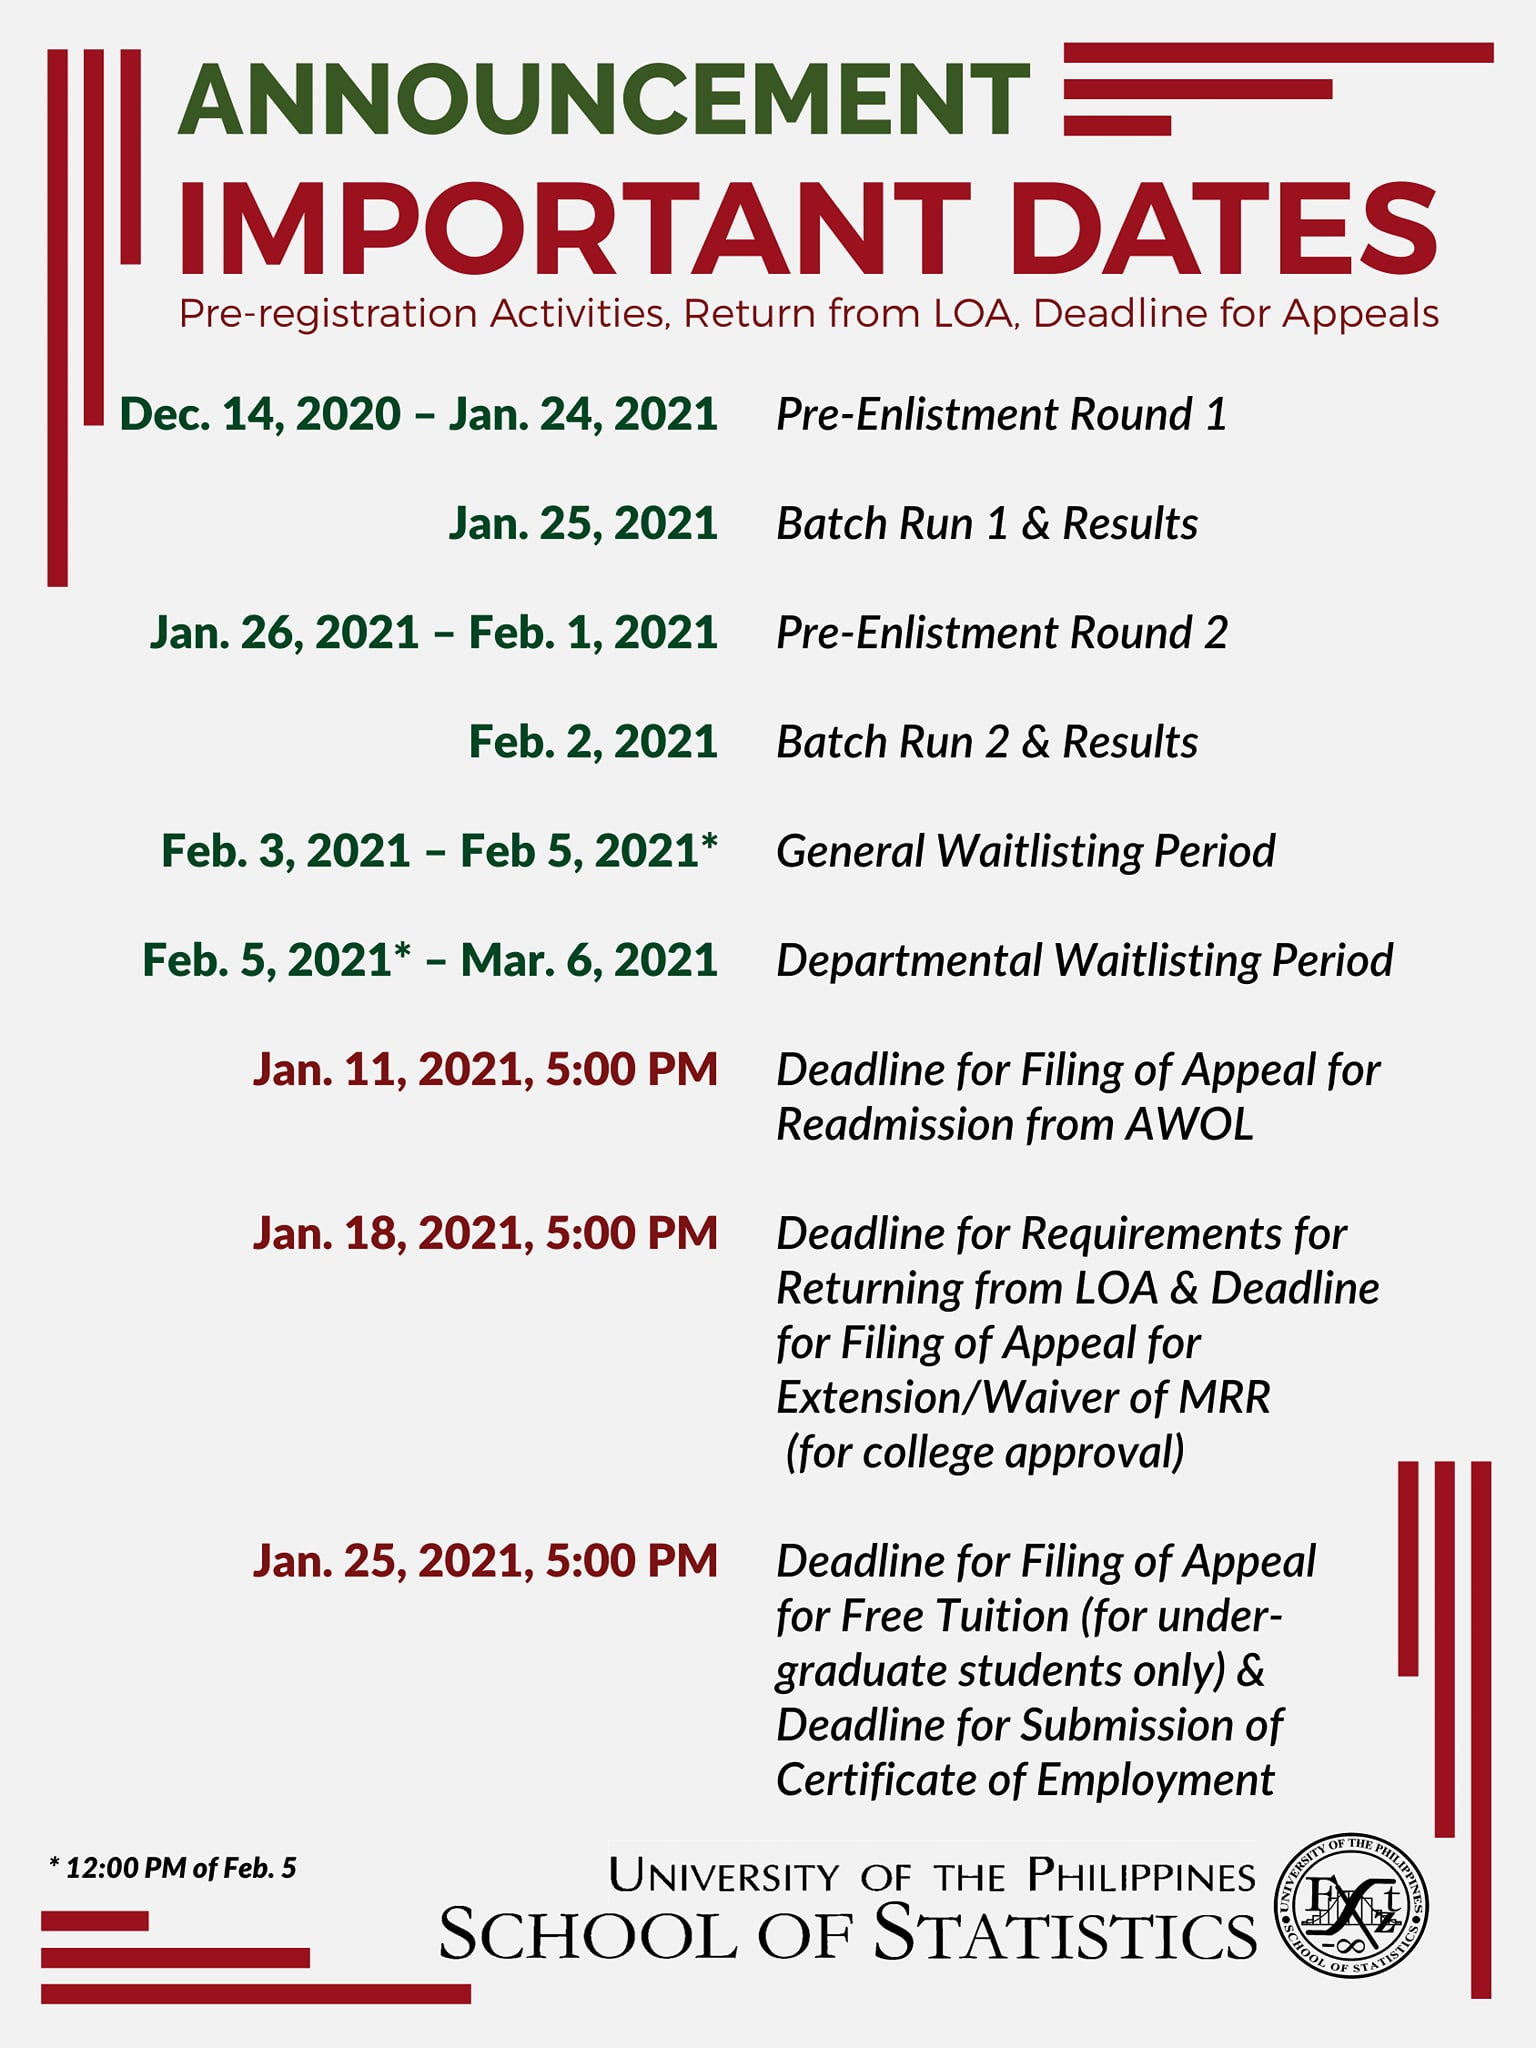 Image for On Changes in Schedules of Important Dates for Registration